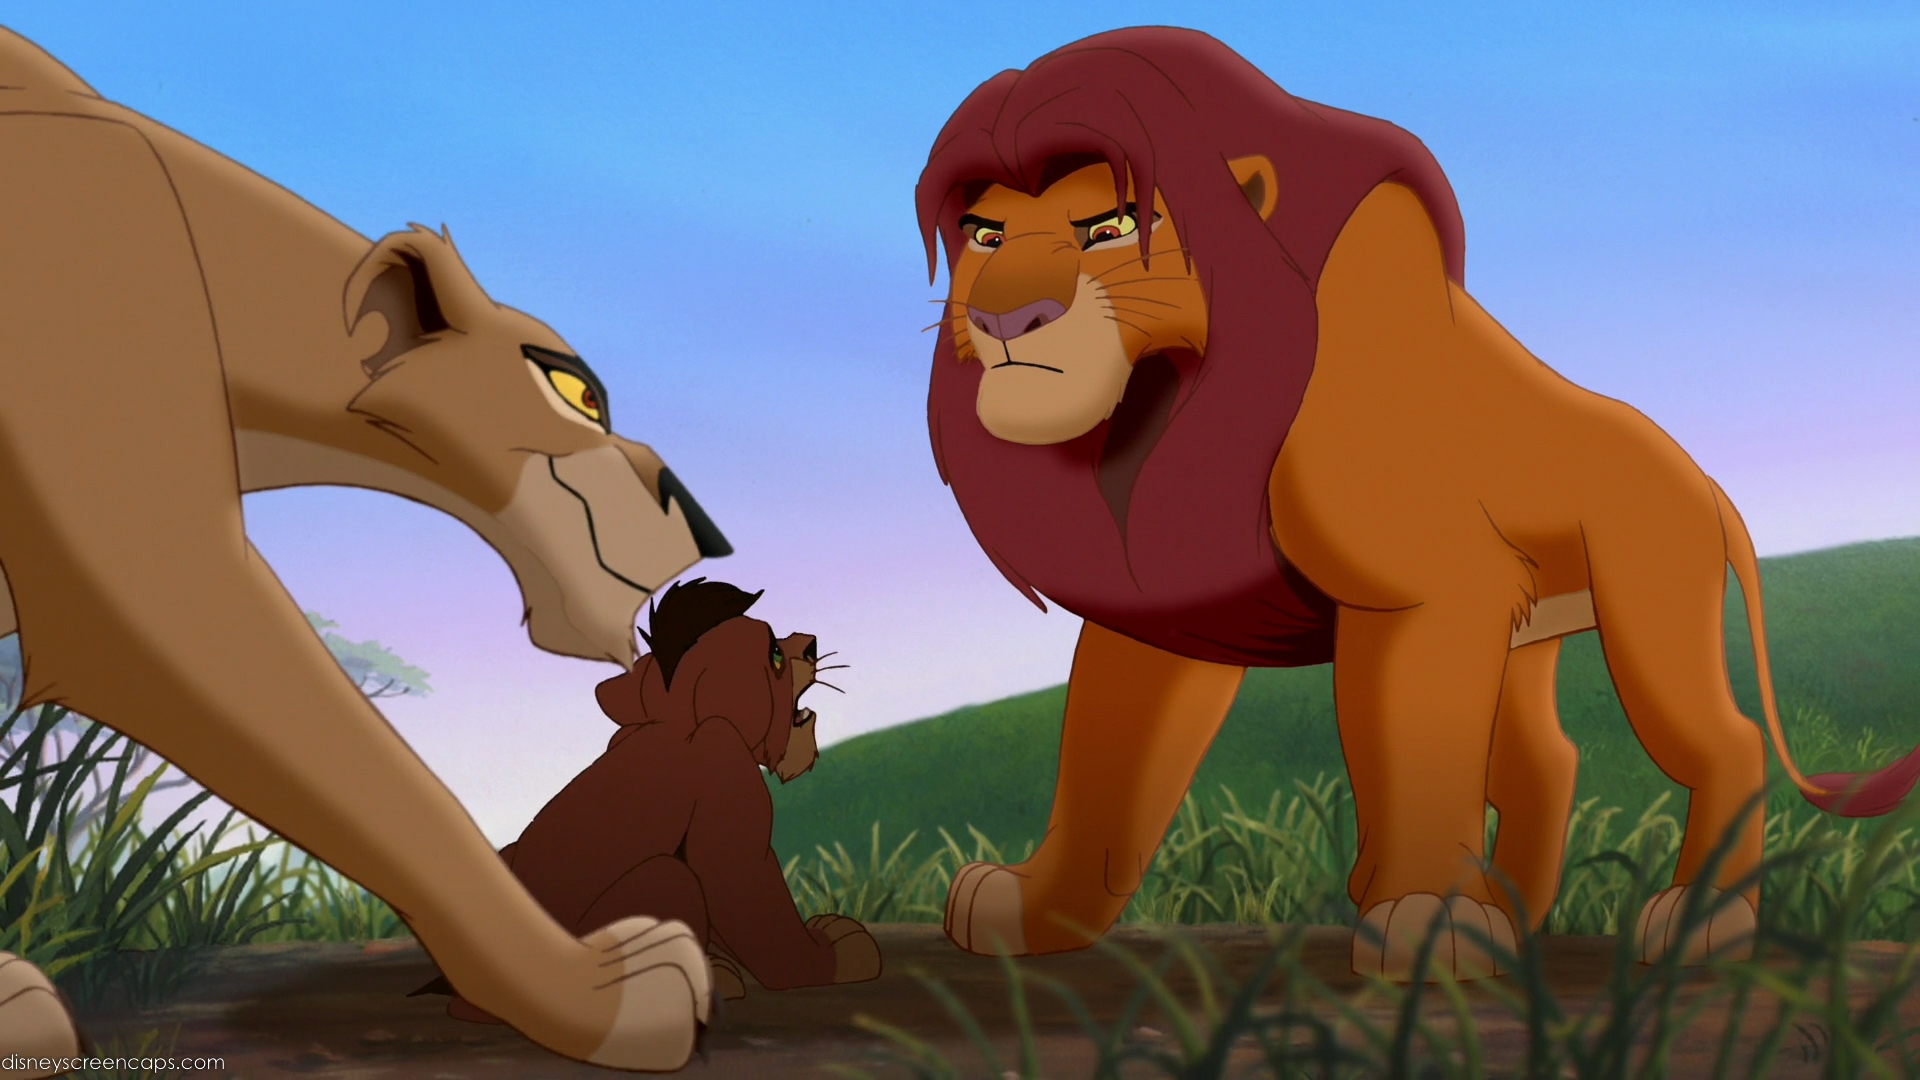 Lion king 2 sexual references